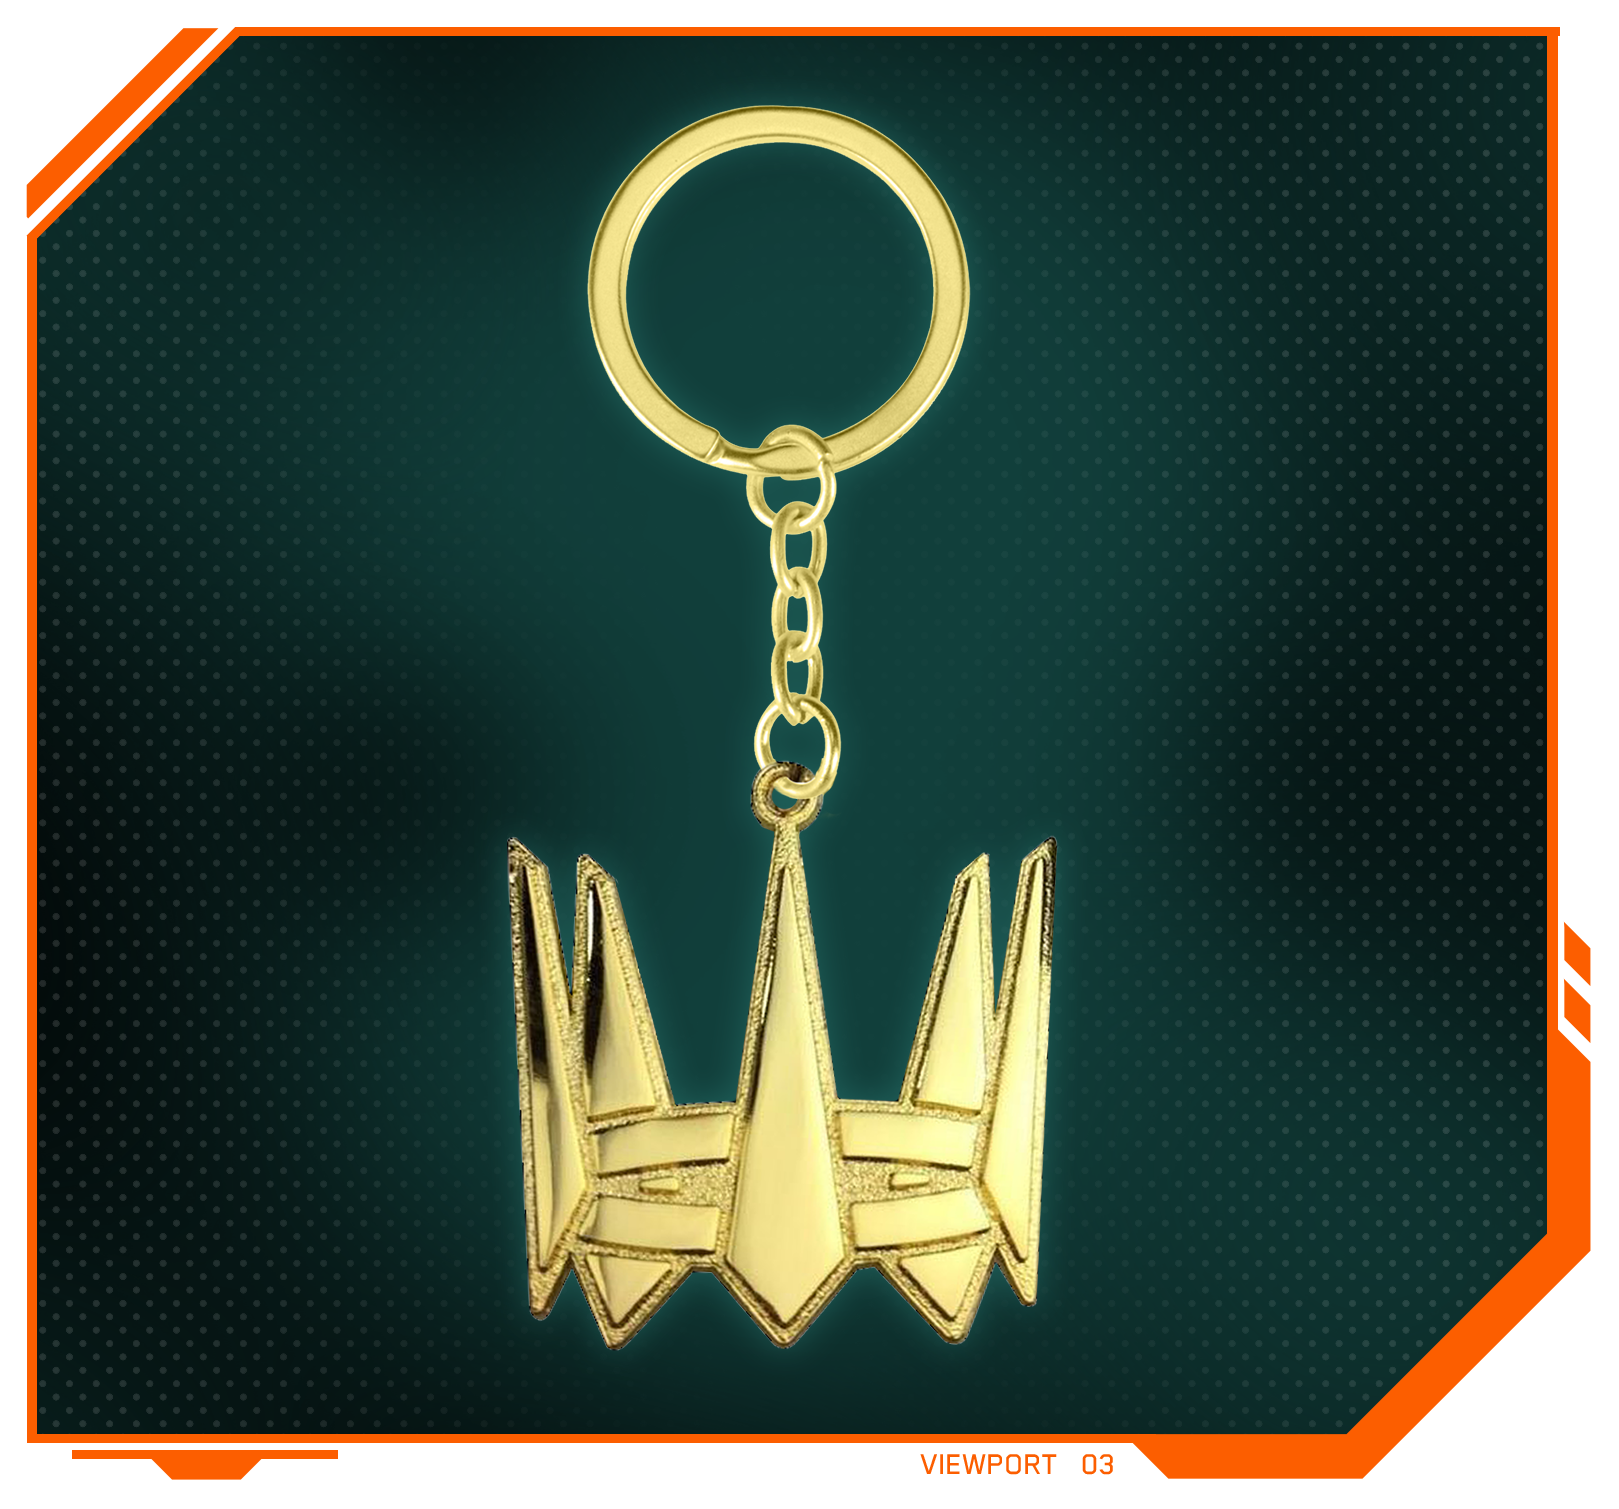 Stylized product image of the Hyper Scape Champion Key Chain